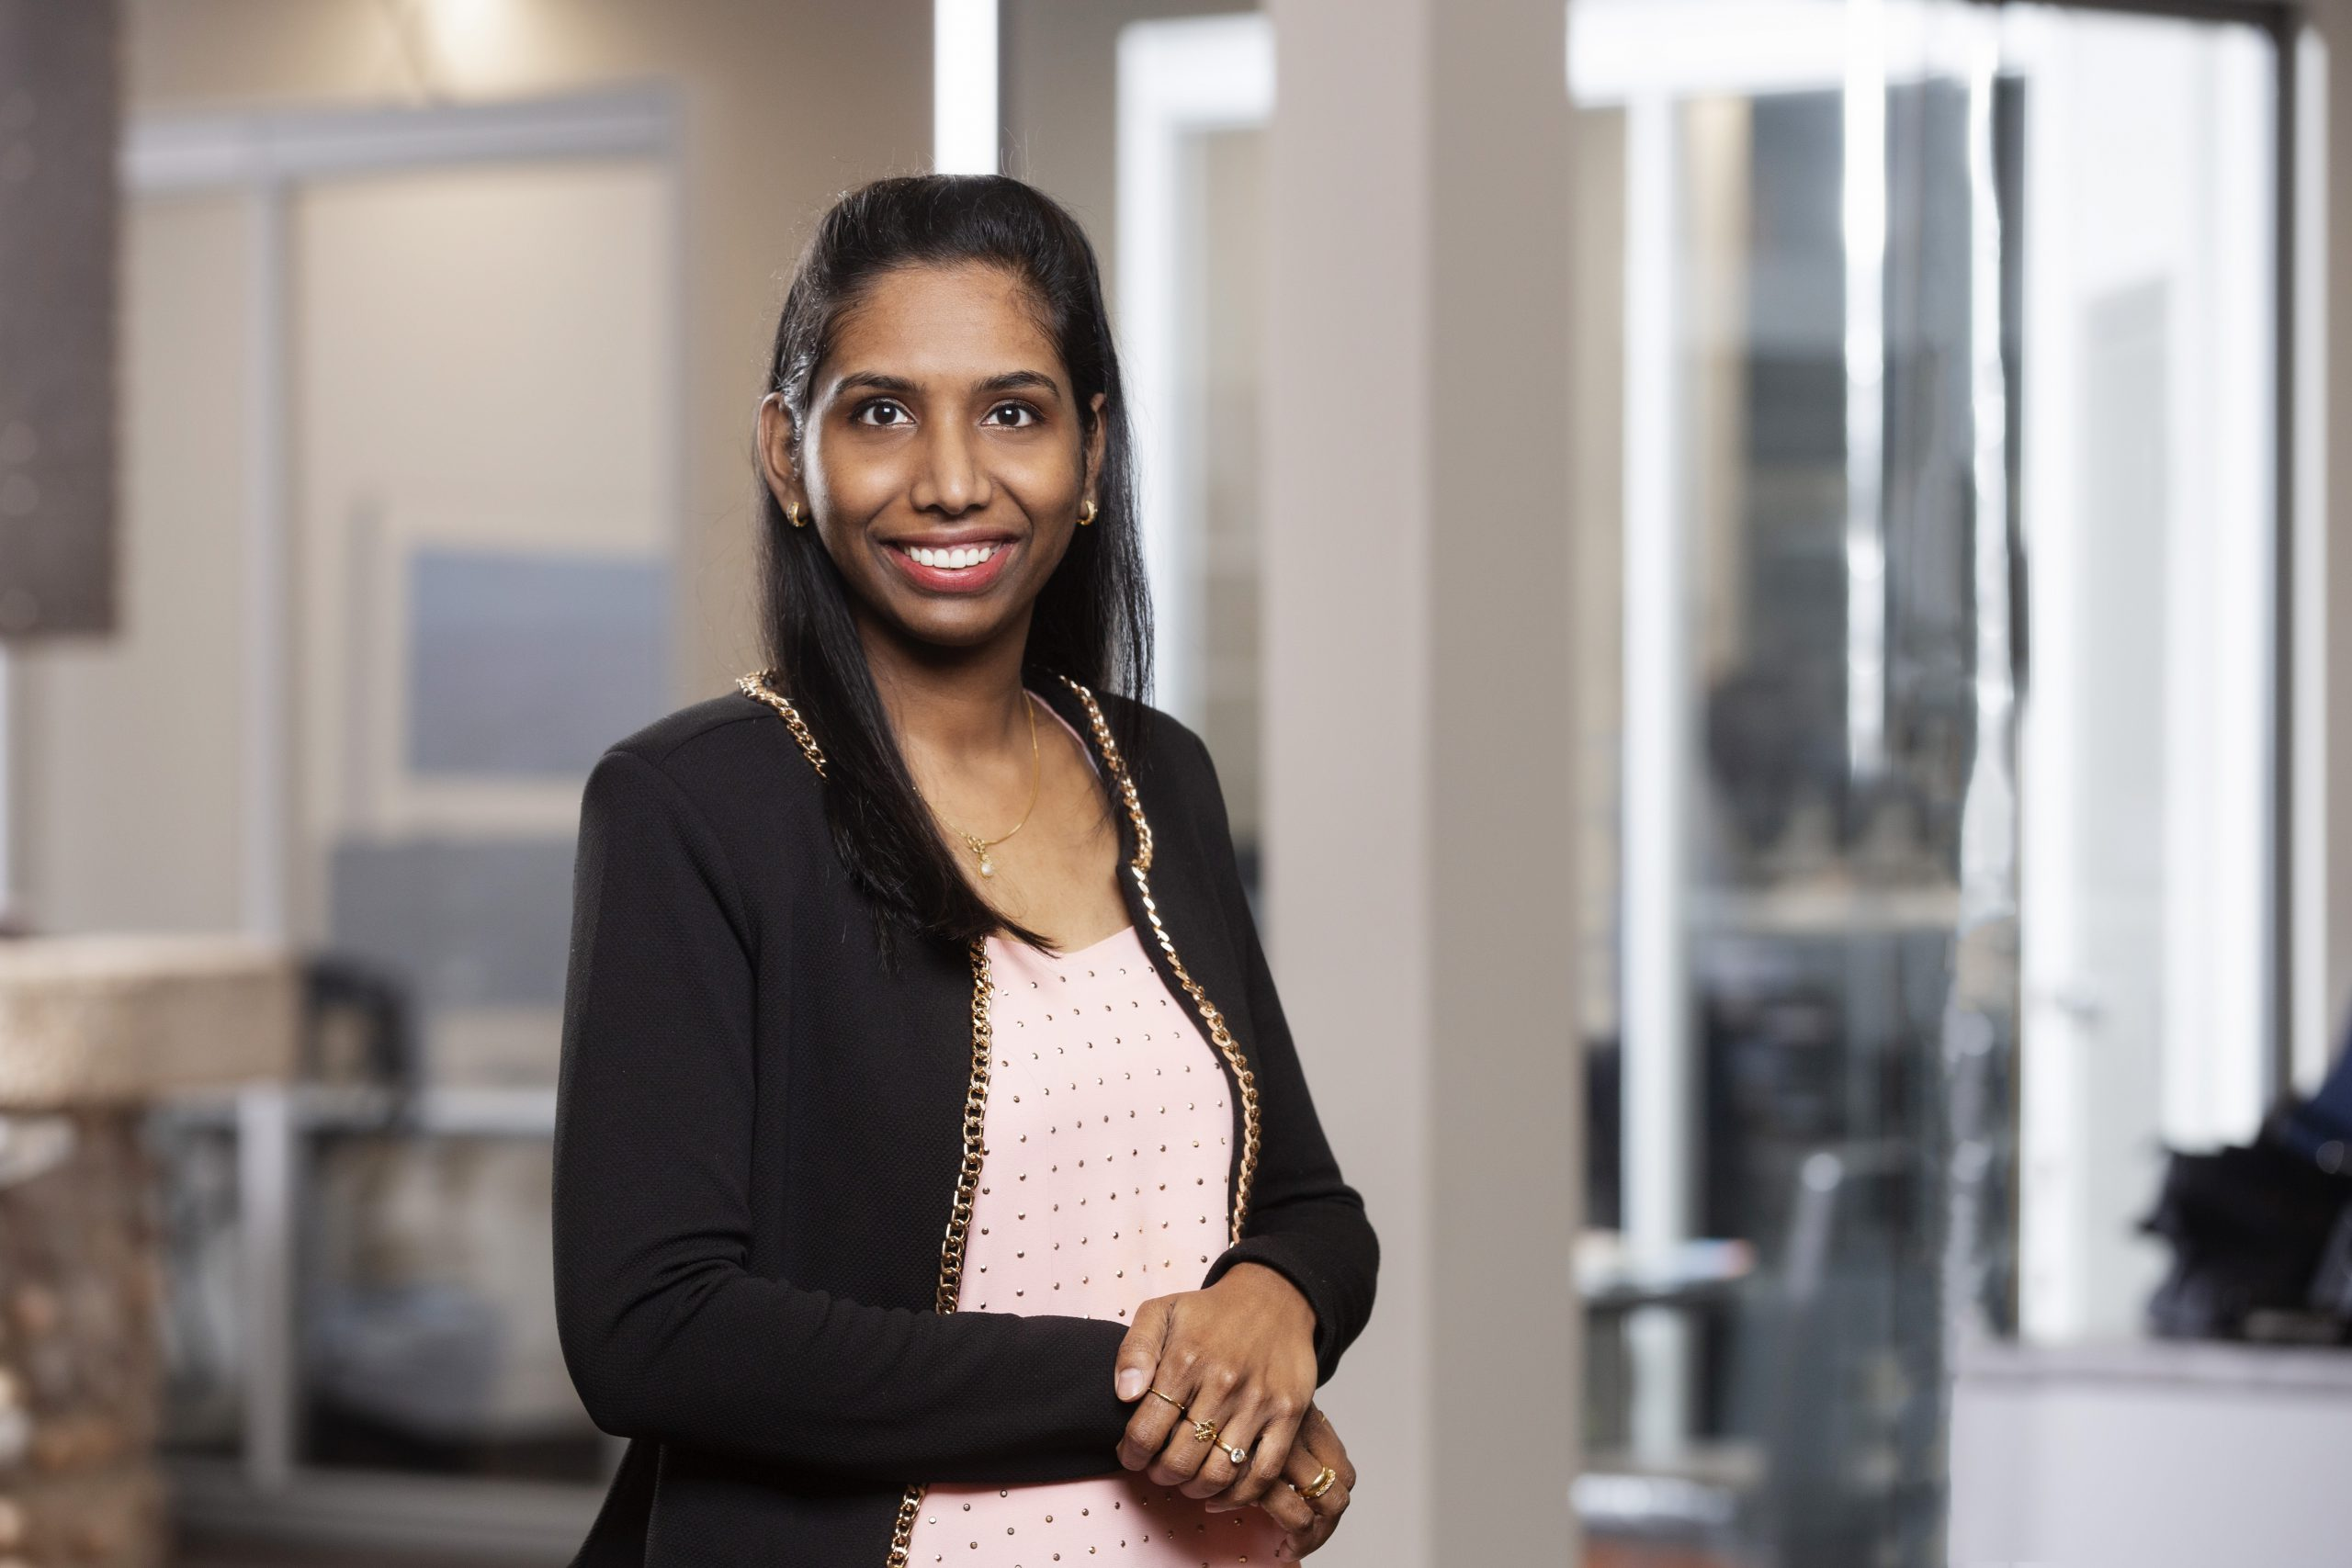 Maritta Varghese; Software Support Specialist